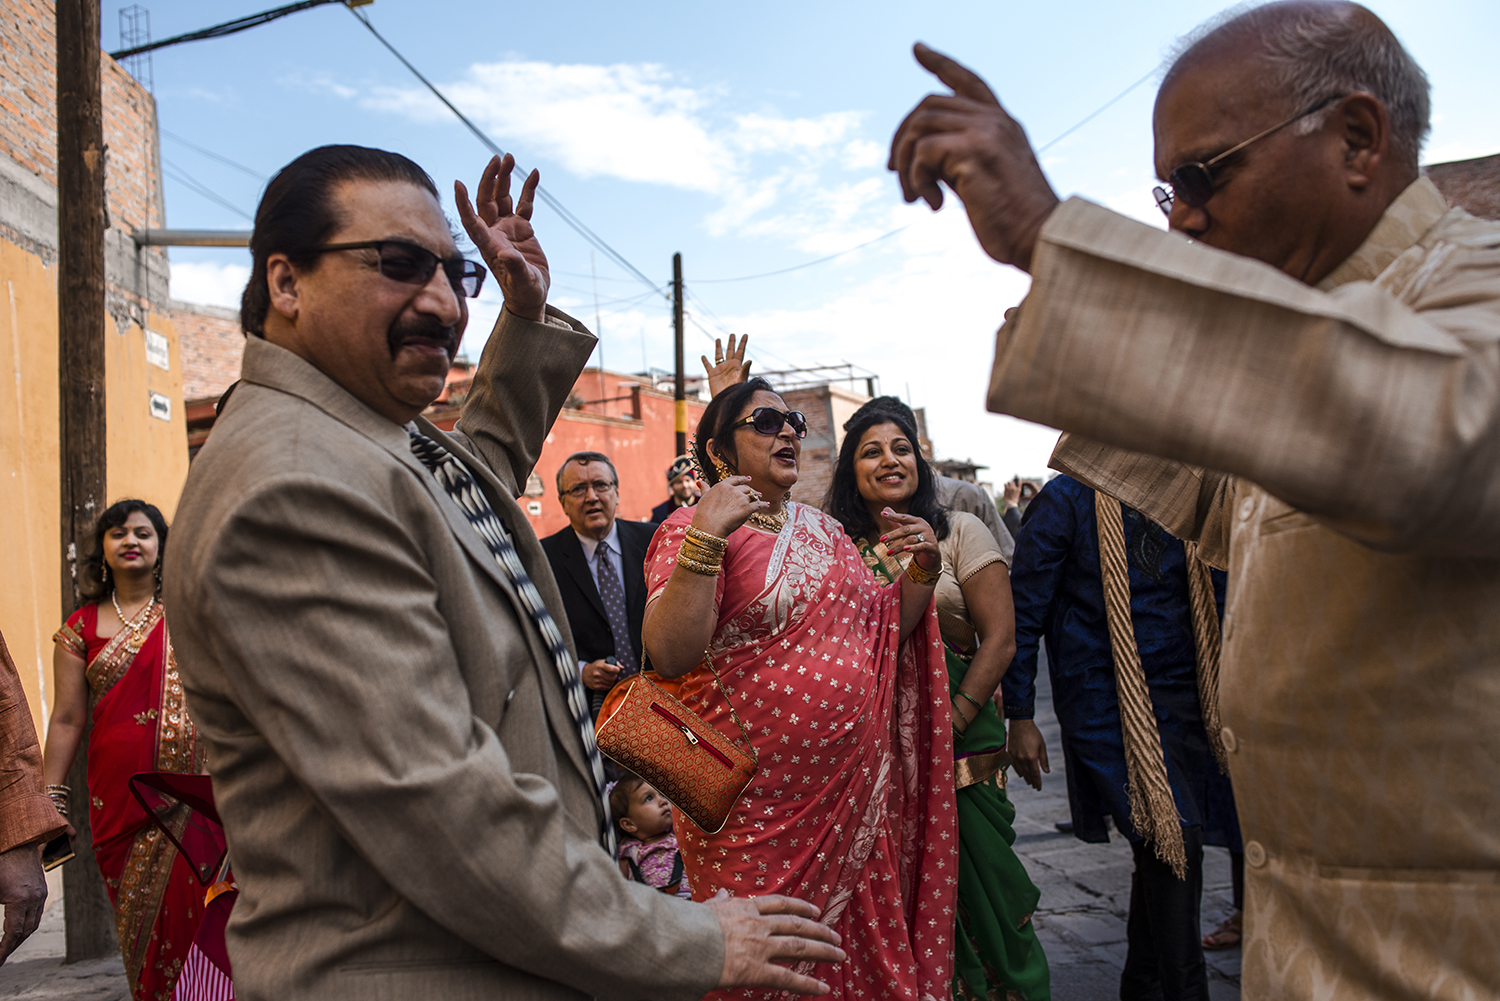 indian_wedding_san_miguel_de_allende_chio_garcia_photographer (27).jpg